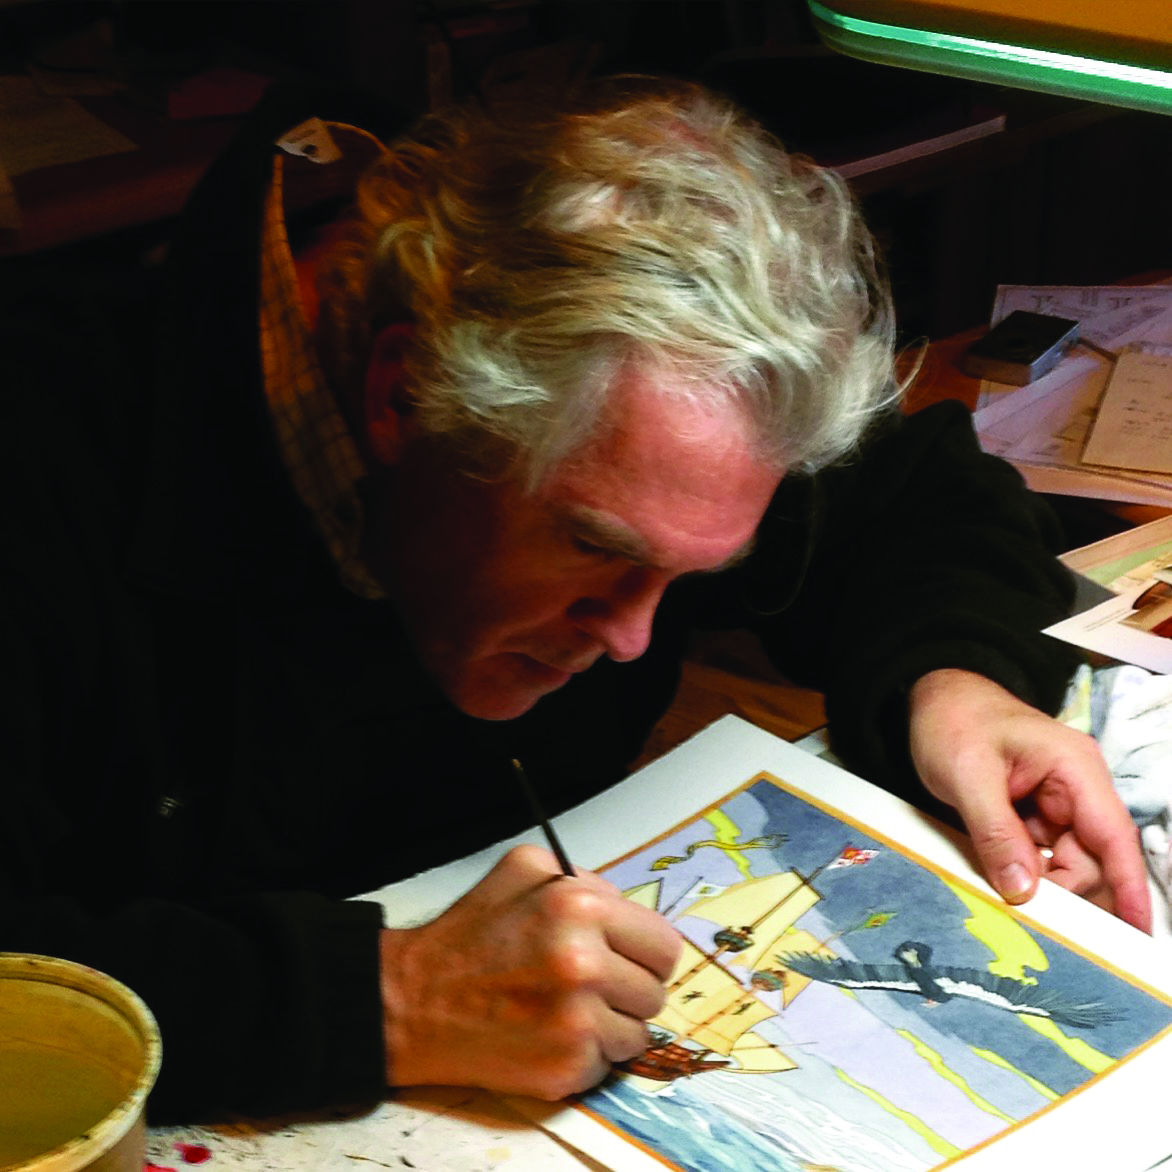 Doug Hansen working on an illustration, image courtesy of Nat Hansen